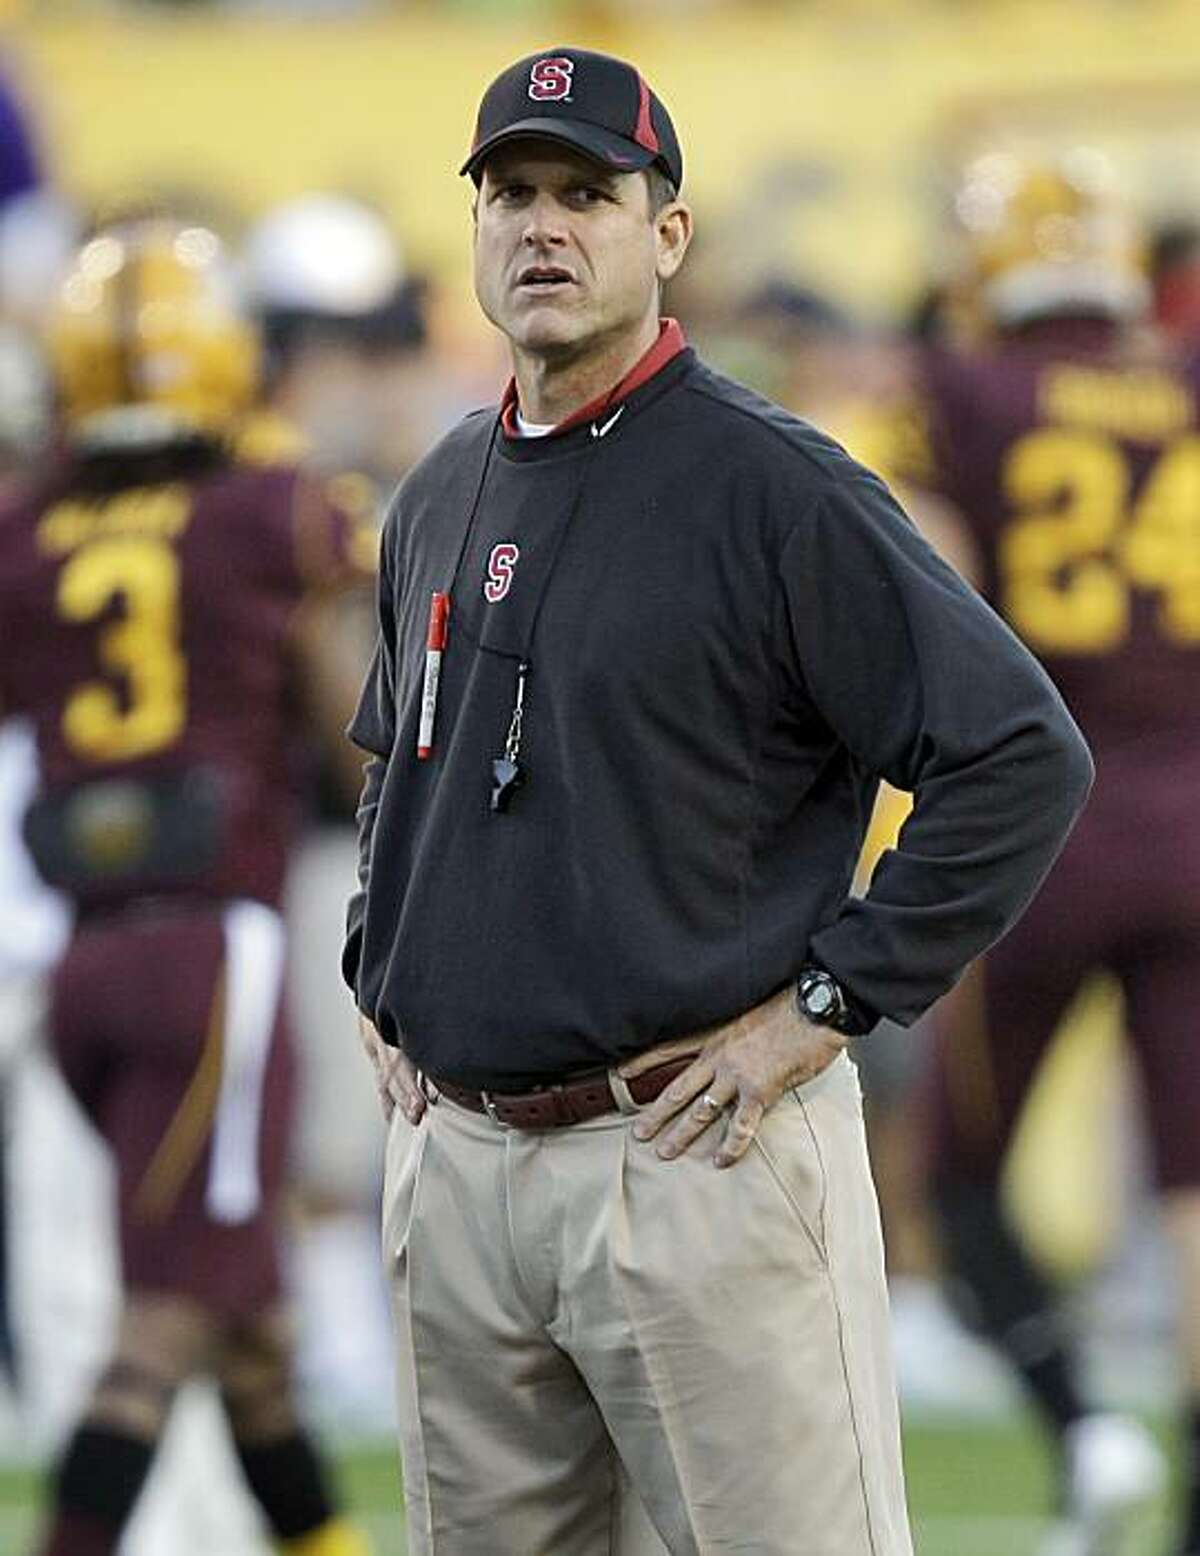 Stanford head coach Jim Harbaugh watches his team warm up prior to an NCAA football game against Arizona State Saturday, Nov. 13, 2010, in Tempe, Ariz.